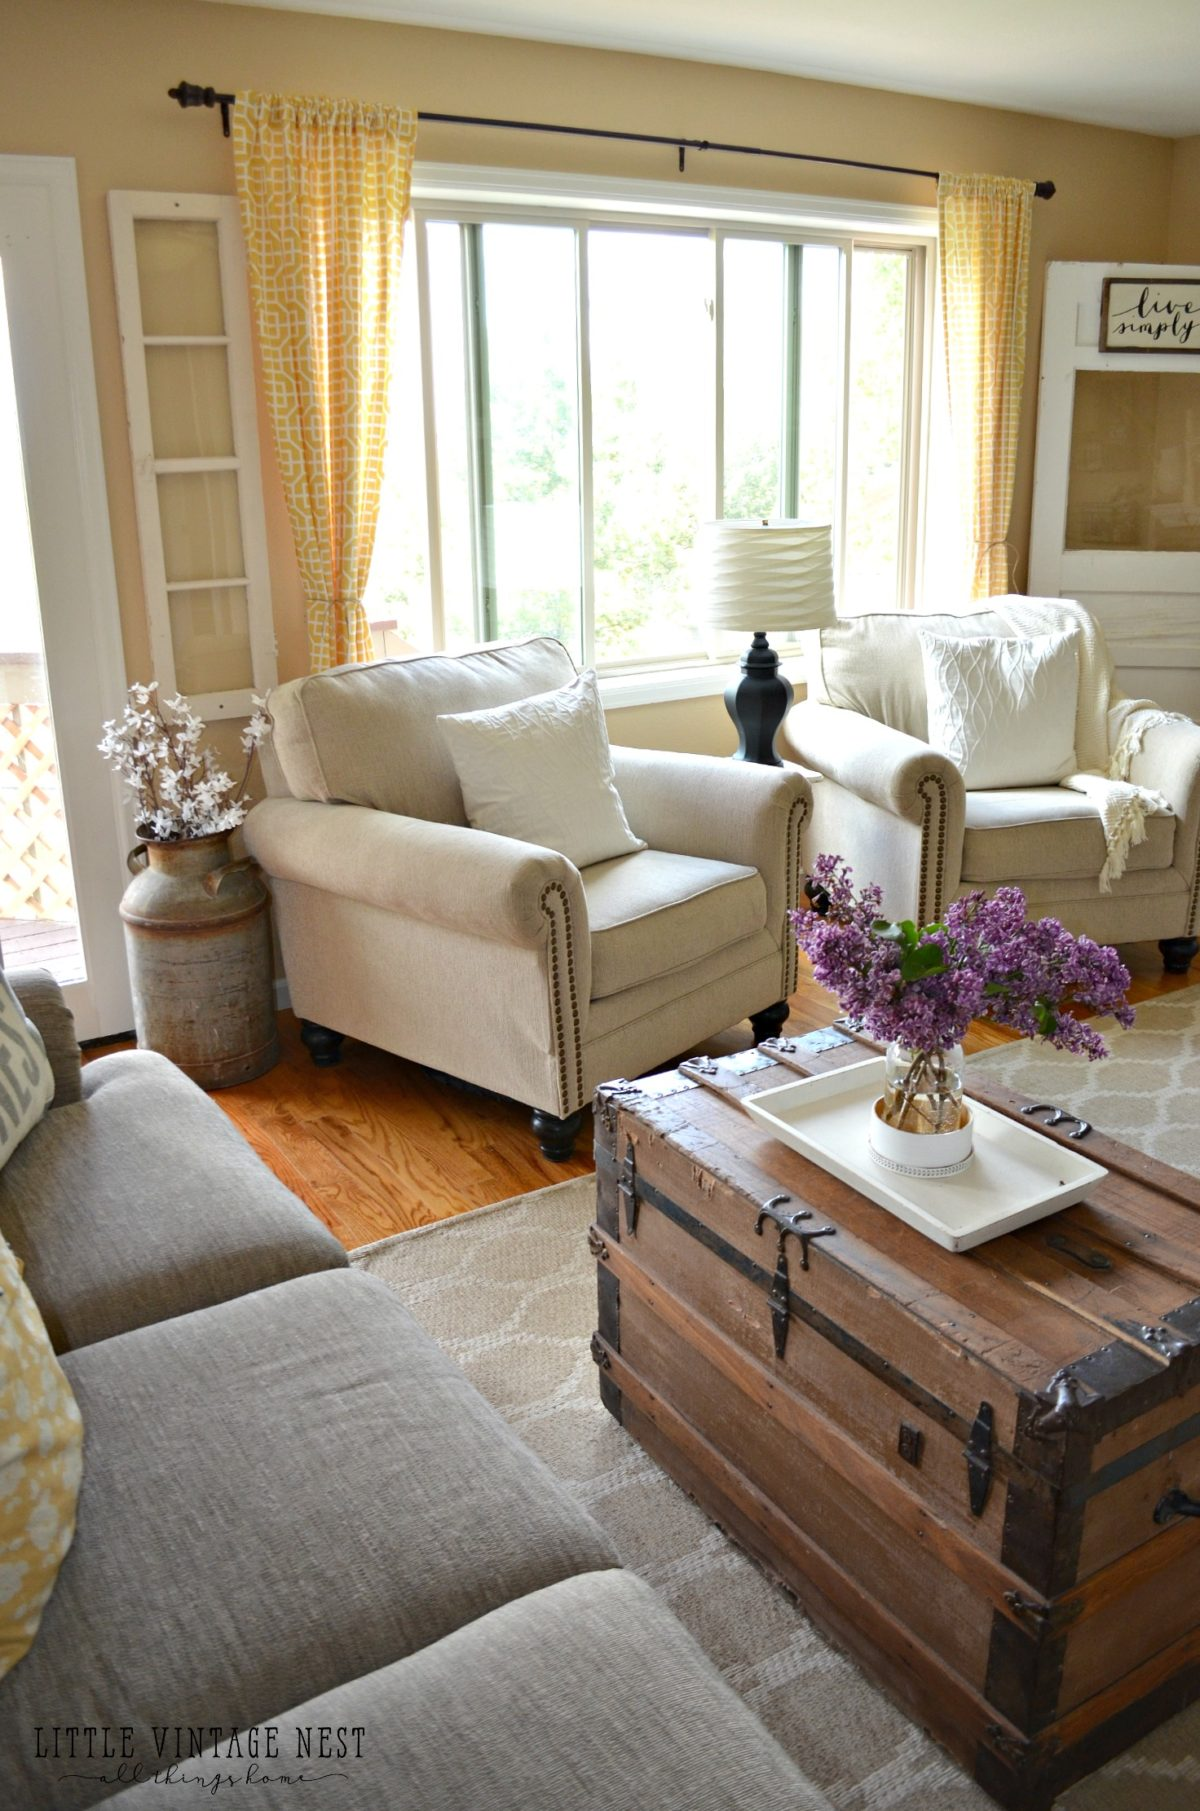 How i transitioned to farmhouse style little vintage nest Old style living room ideas